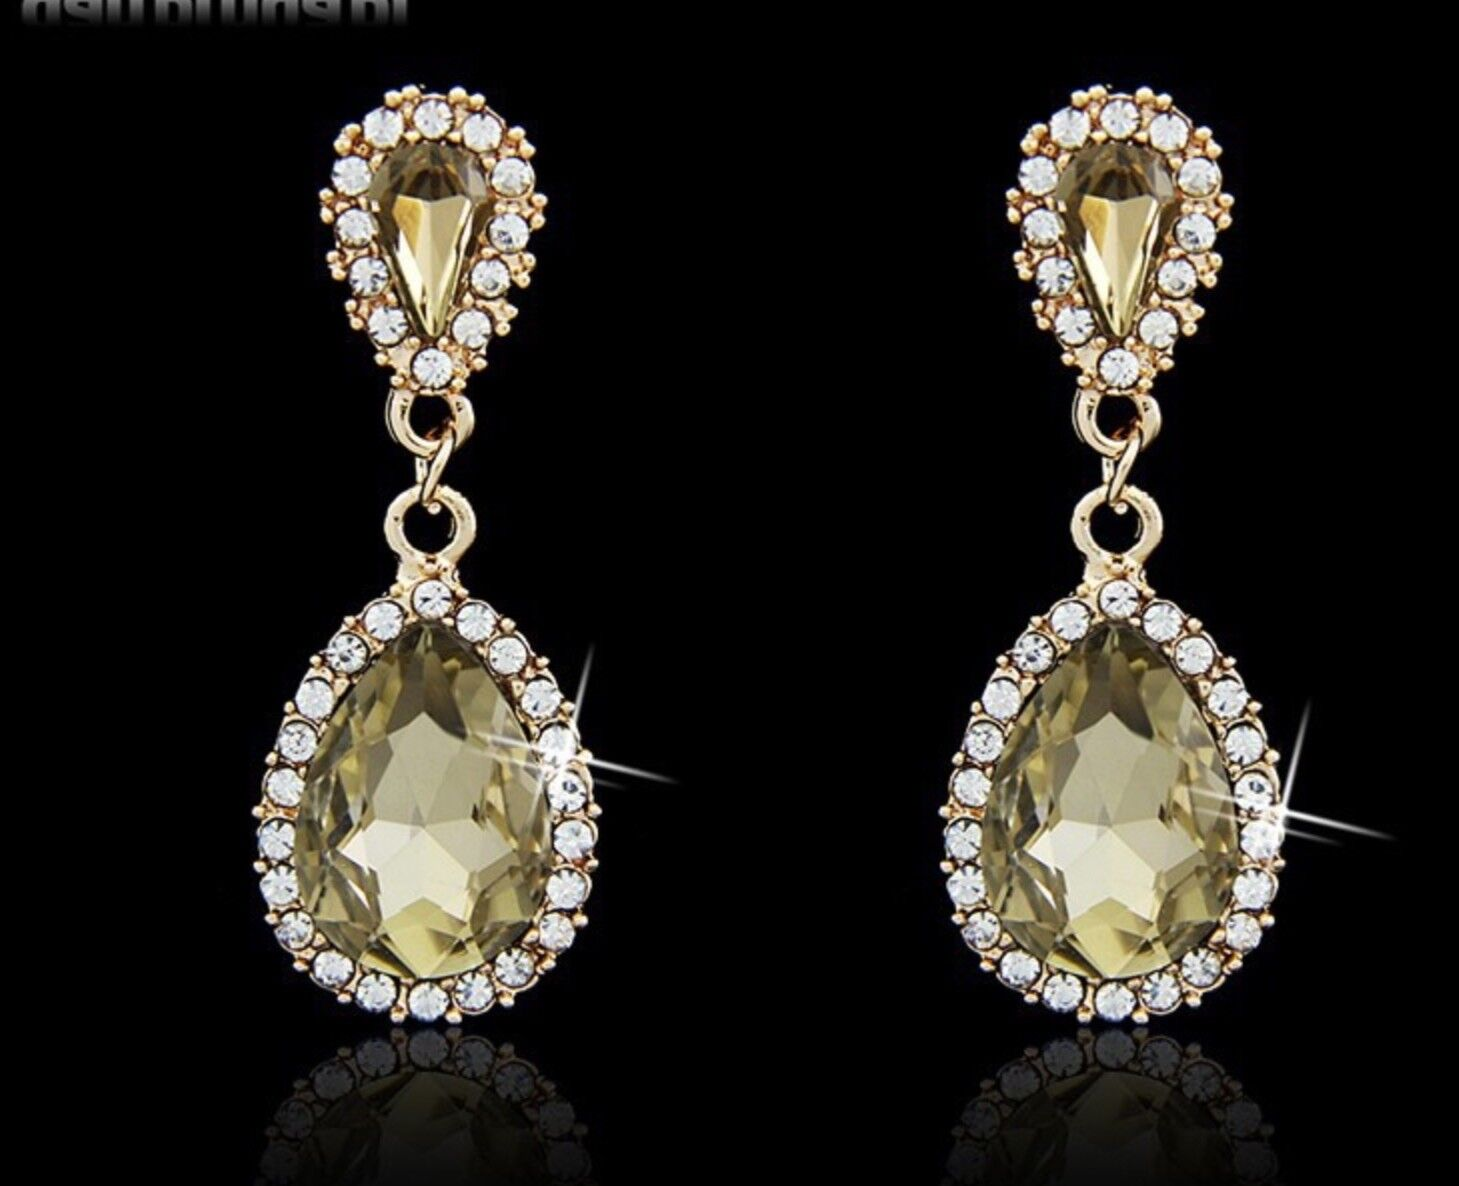 2 Pairs Wedding jewelry rose gold with champagne stone dangl